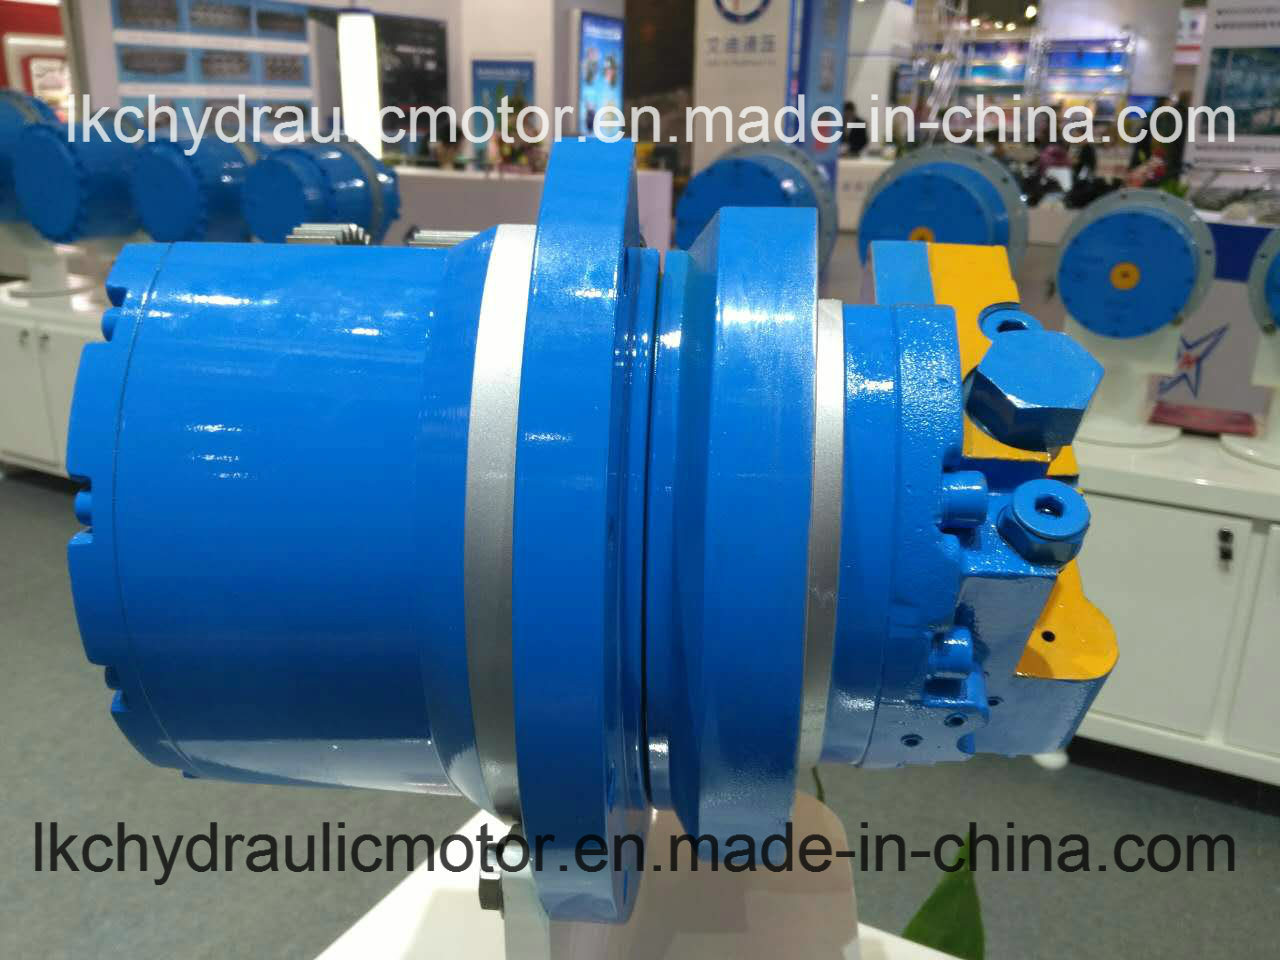 Final Drive Hydraulic Travel Motor for 0.8t~36t Crawler Equipment (LTM02 ~LTM60)